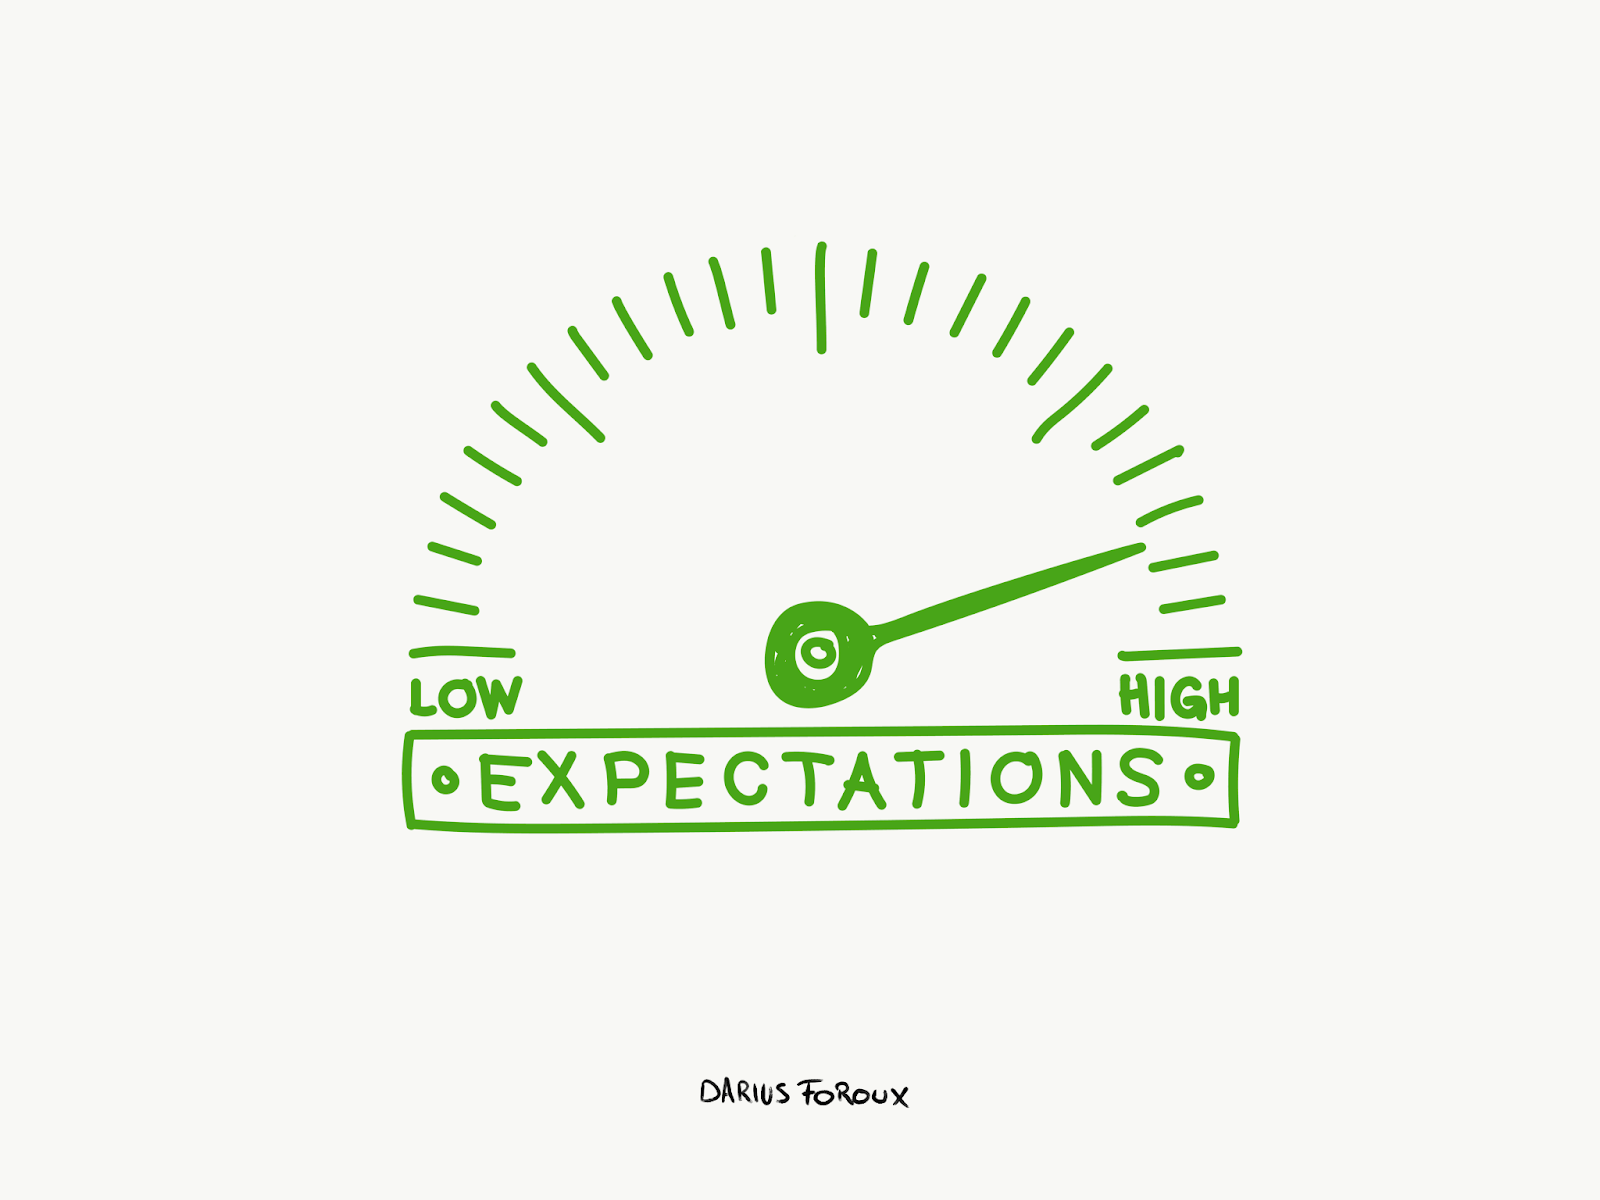 Having High Expectations